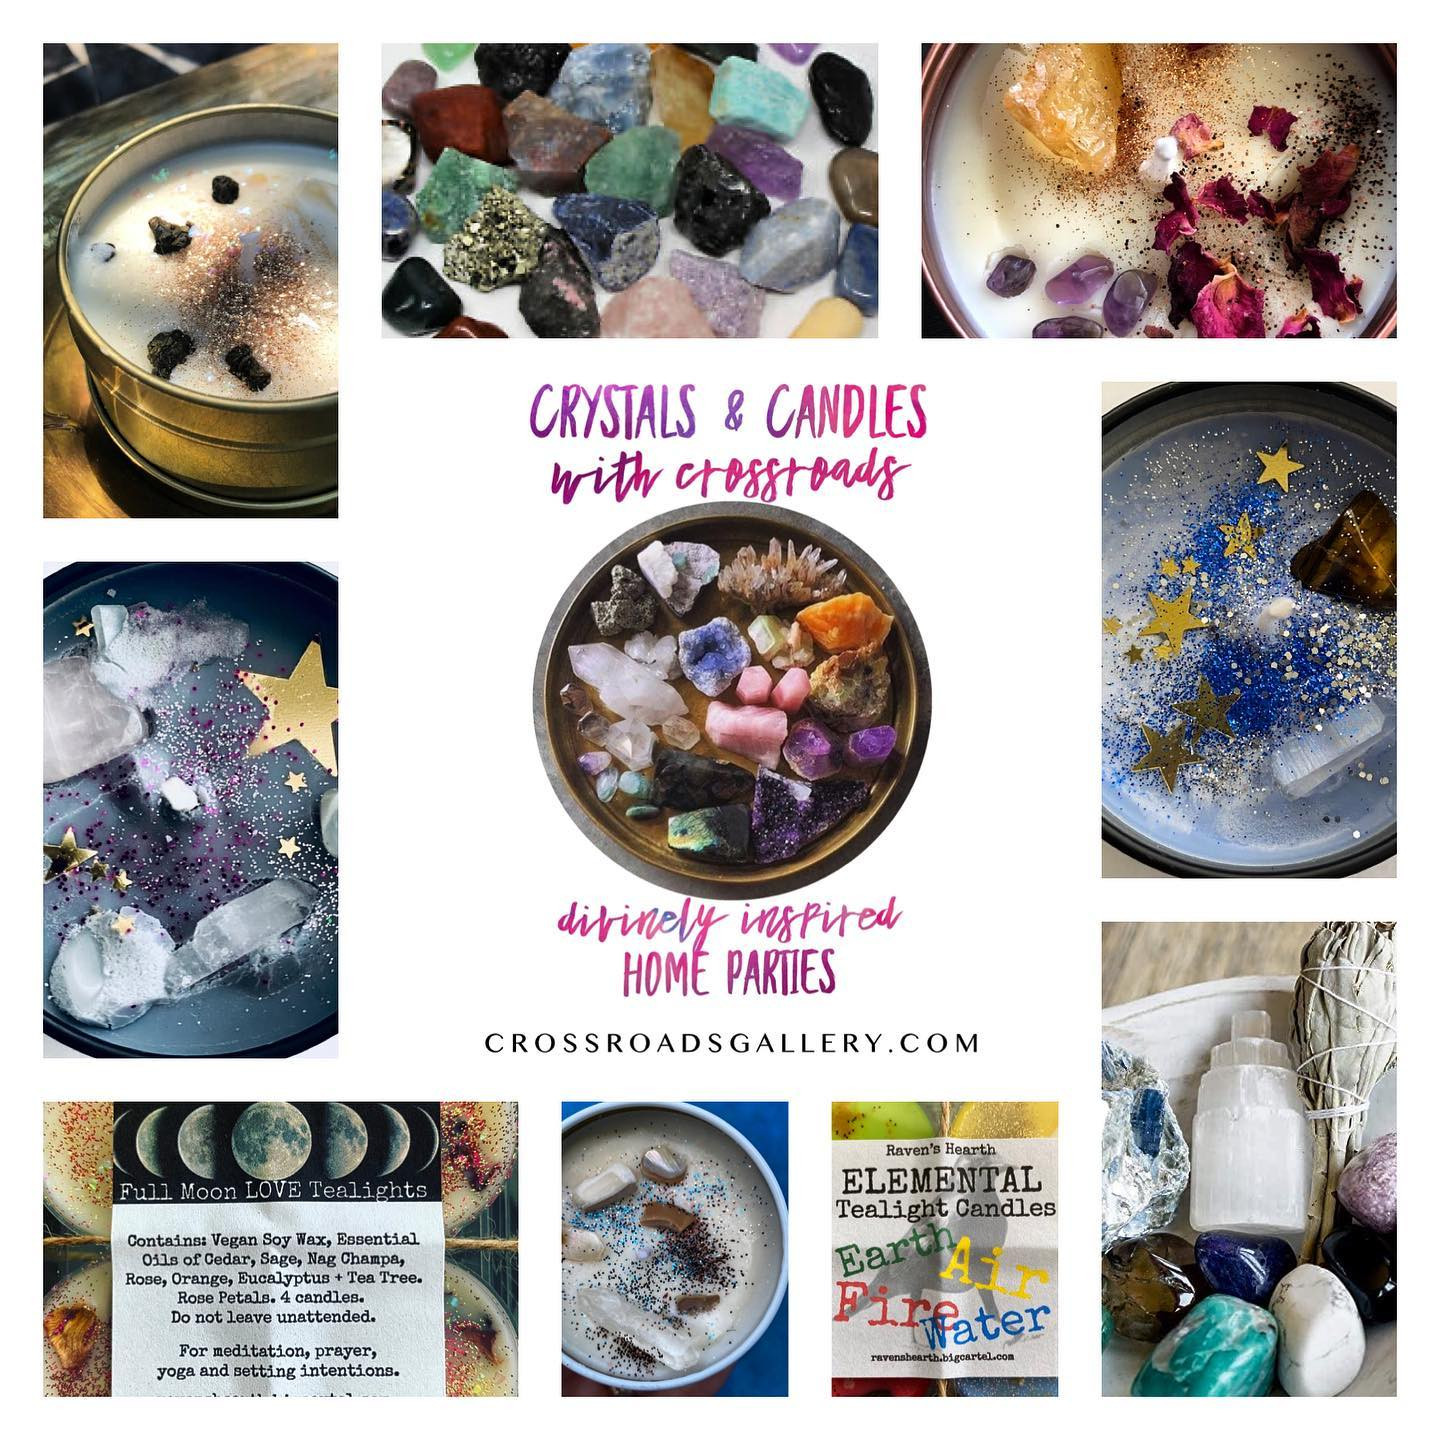 Crystals & Candles with Crossroads